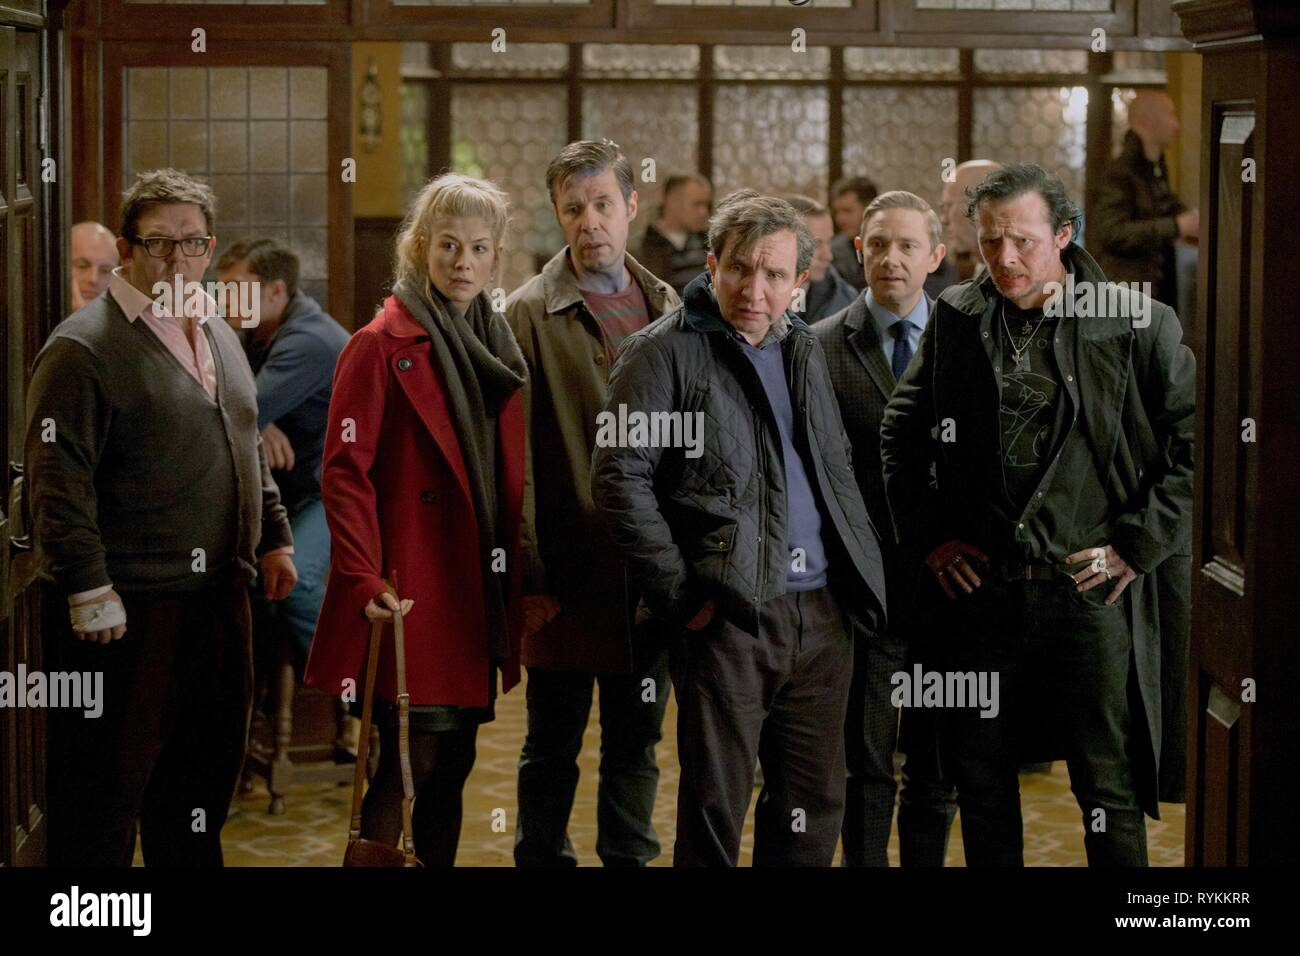 FROST,PIKE,CONSIDINE,MARSAN,FREEMAN,PEGG, THE WORLD'S END, 2013 - Stock Image